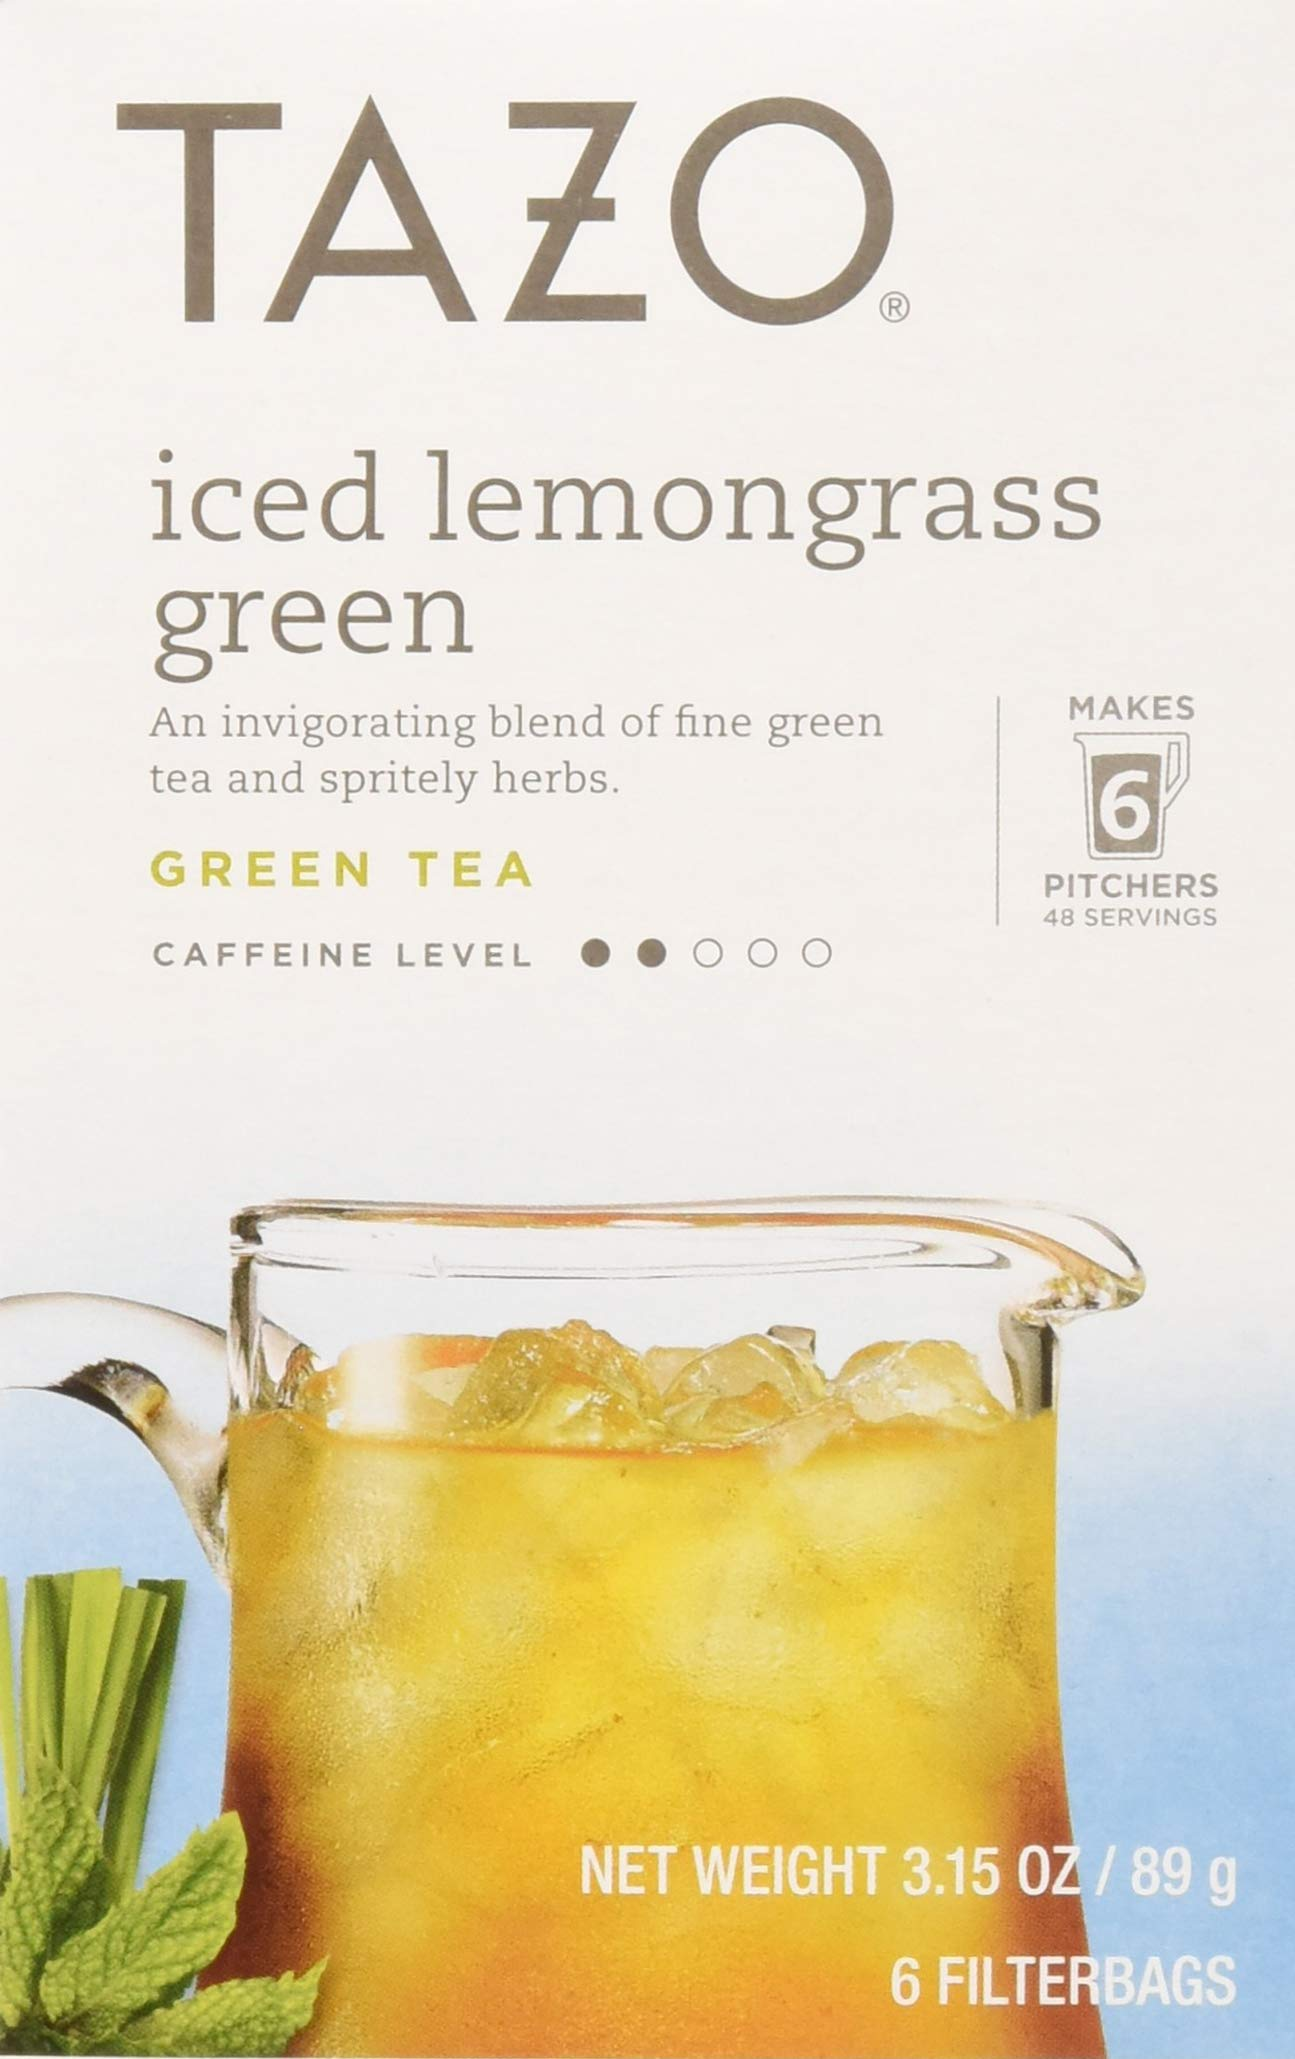 Tazo Tea Bag, Iced Lemongrass Green, 6 Count, Pack of 4 (Packaging may vary) by Tazo